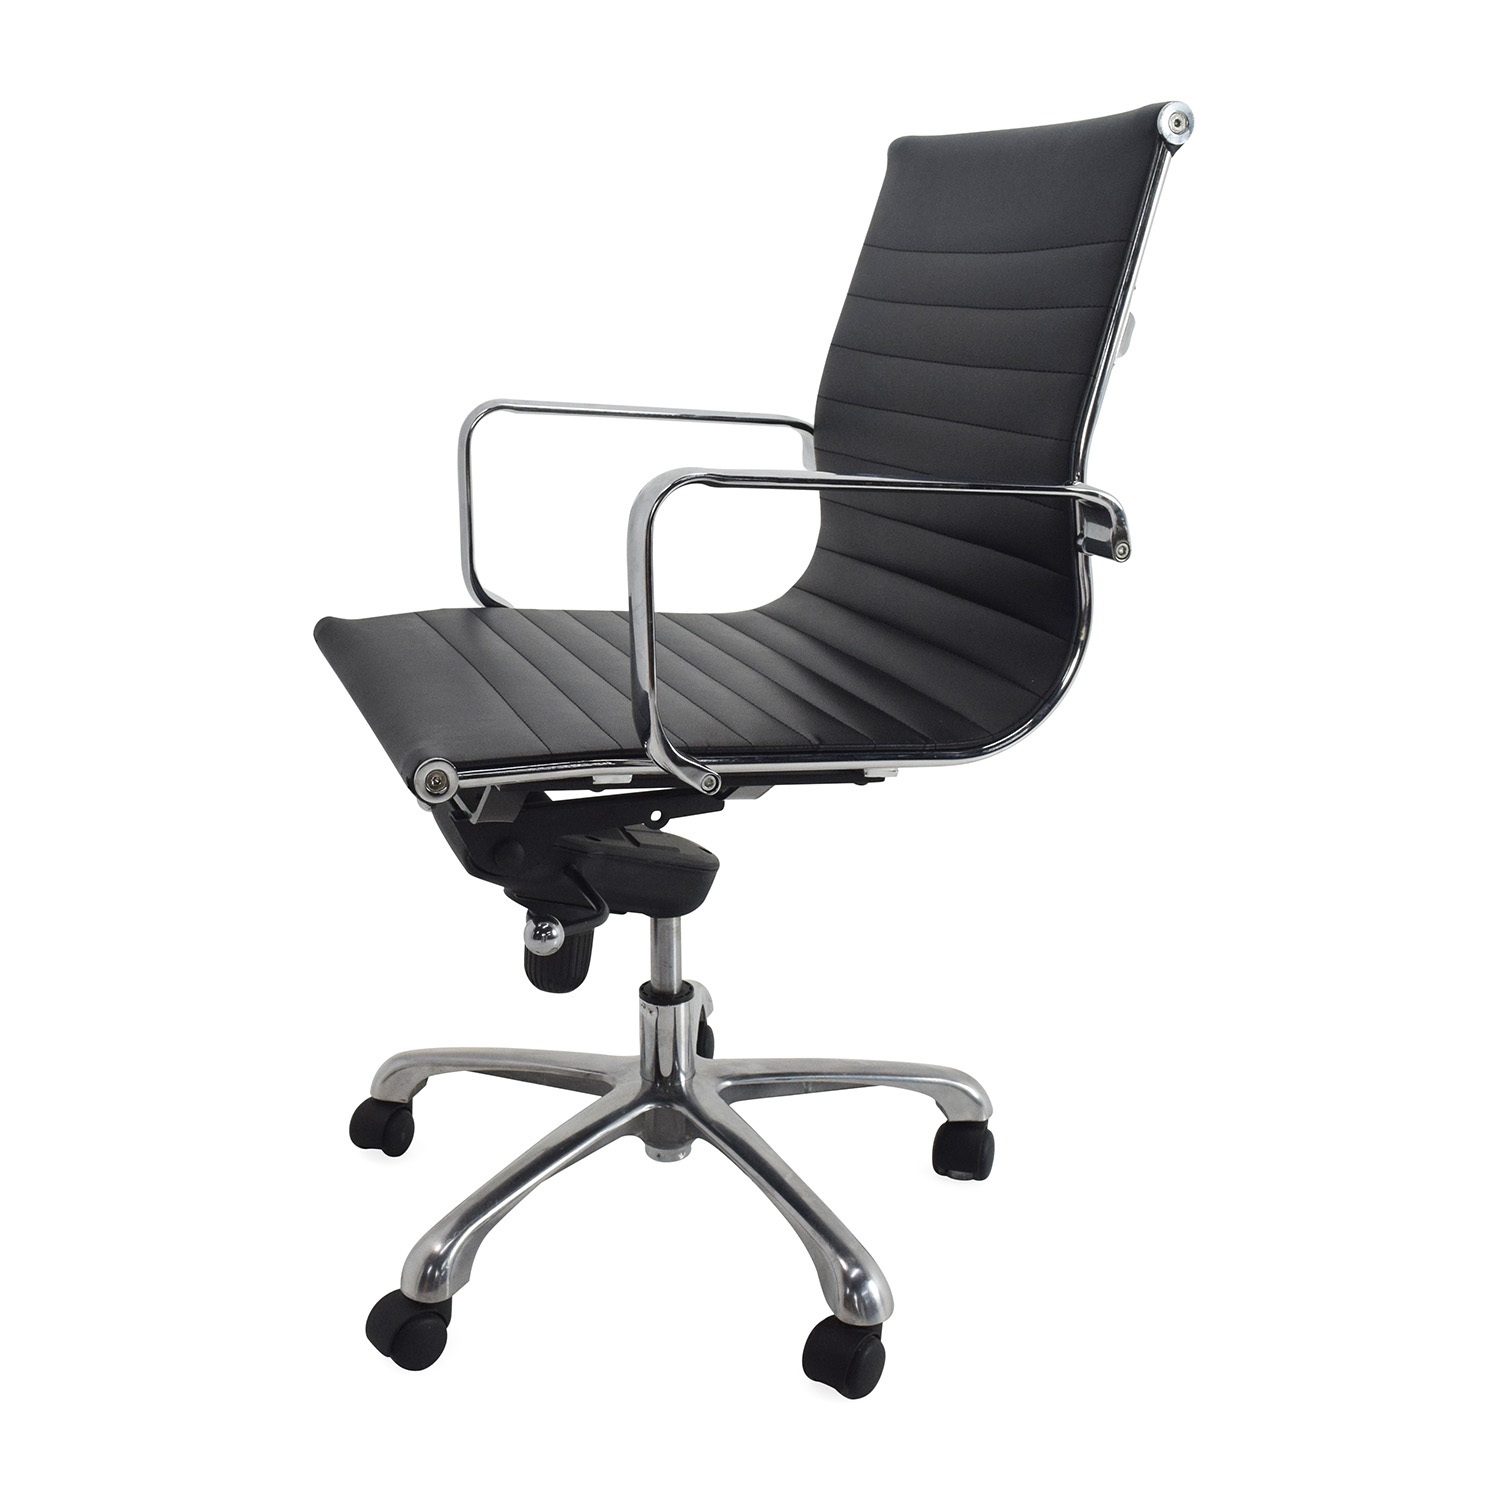 84 OFF  Meelano Eames Style Office Chair  Chairs